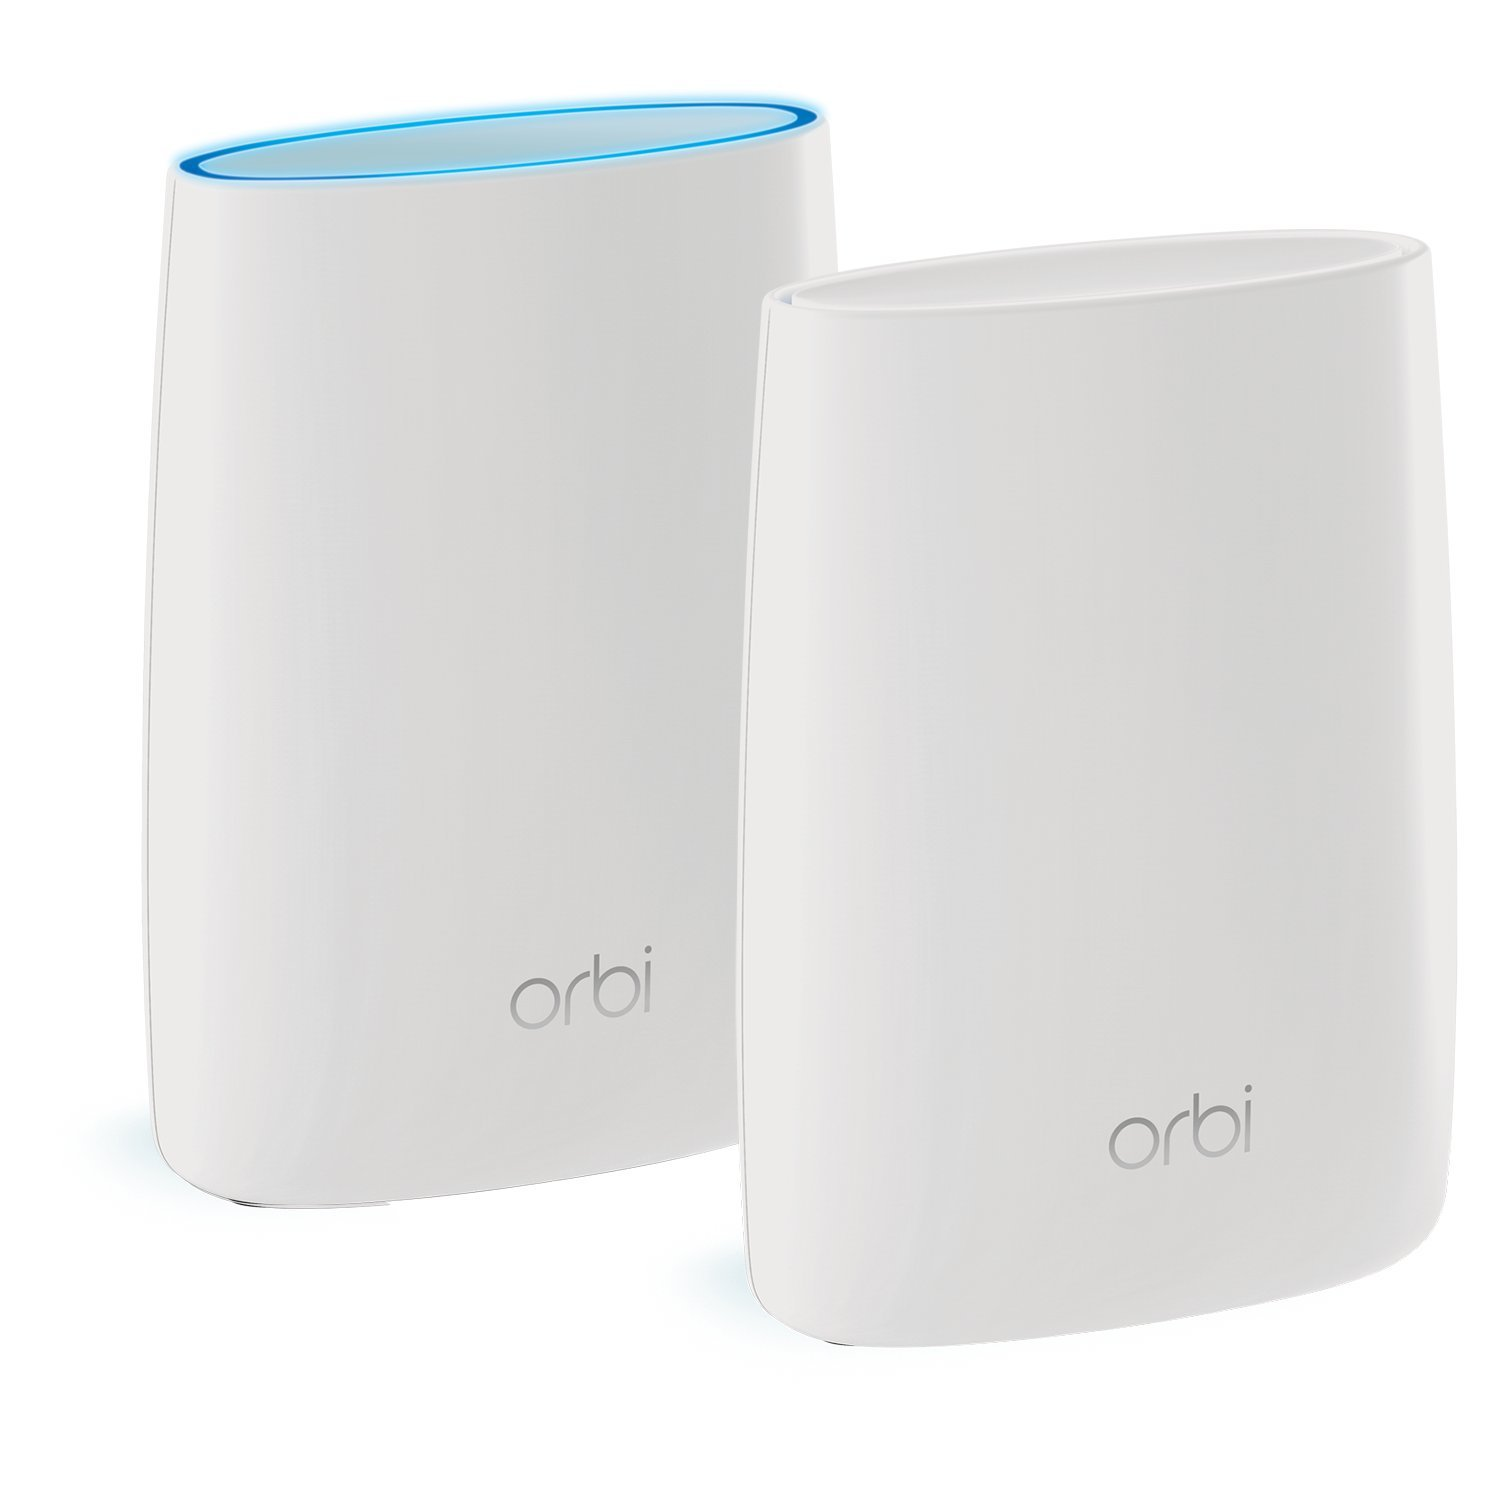 NETGEAR Orbi Whole Home Mesh WiFi System with Tri-band – Eliminate WiFi dead zones, Simple setup, Single network name, Works with Amazon Alexa, Up to 5,000 sqft, AC3000 (Set of 2) by NETGEAR